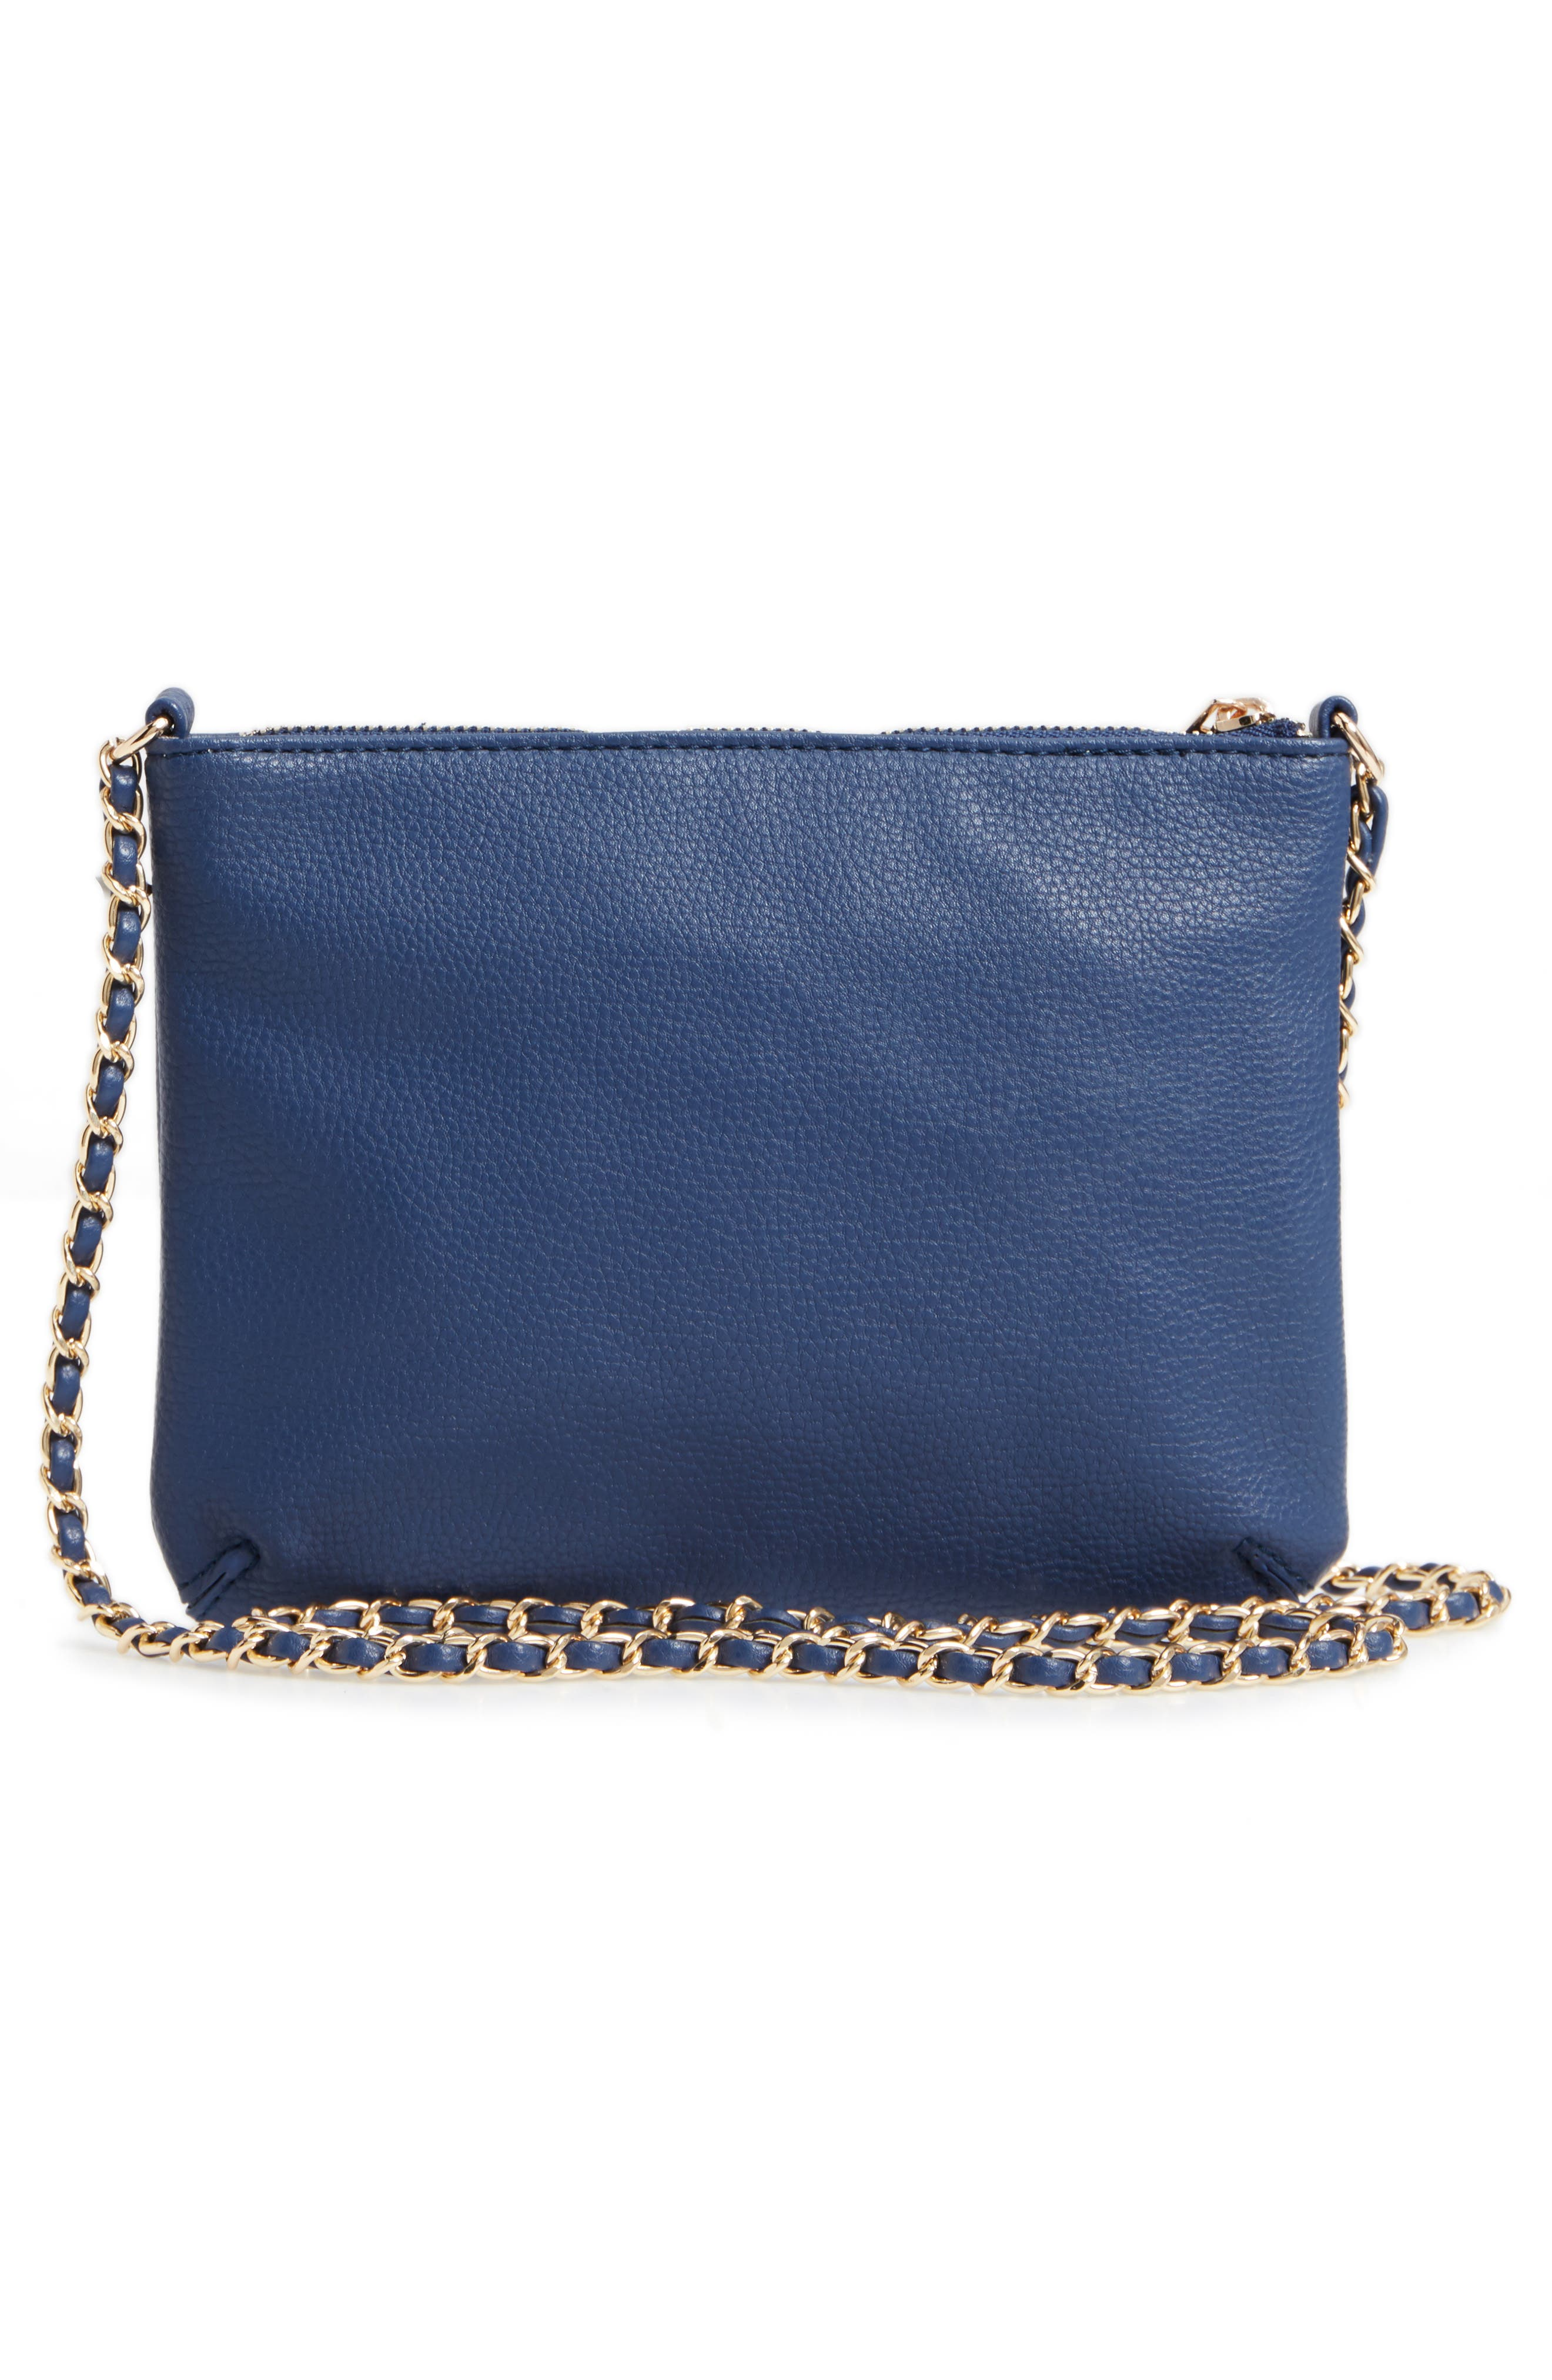 Faux Leather Crossbody Bag,                             Alternate thumbnail 3, color,                             Indigo